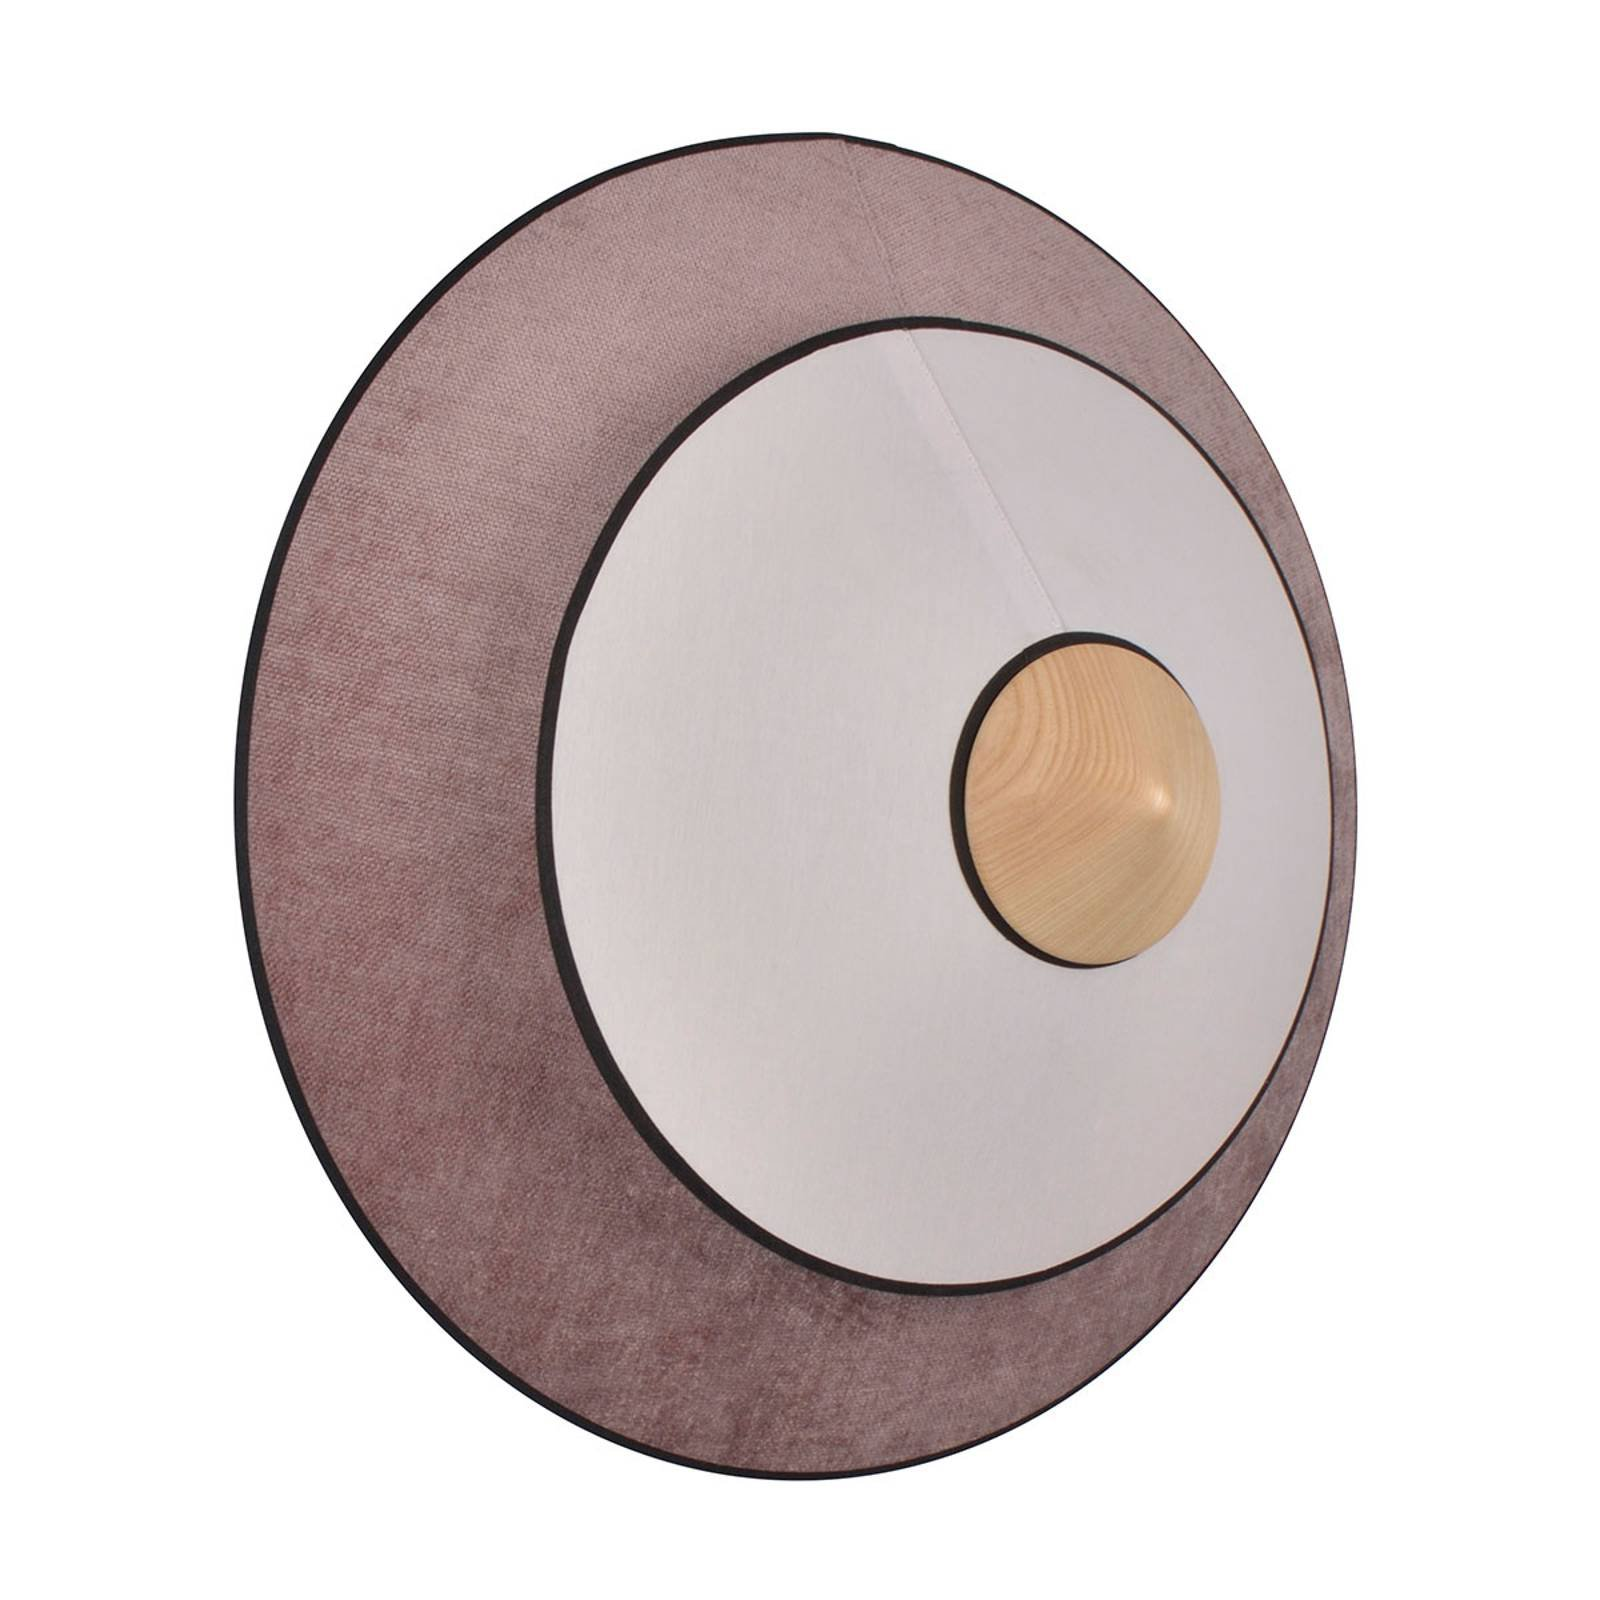 Forestier Cymbal S LED-vegglampe, pudderrosa